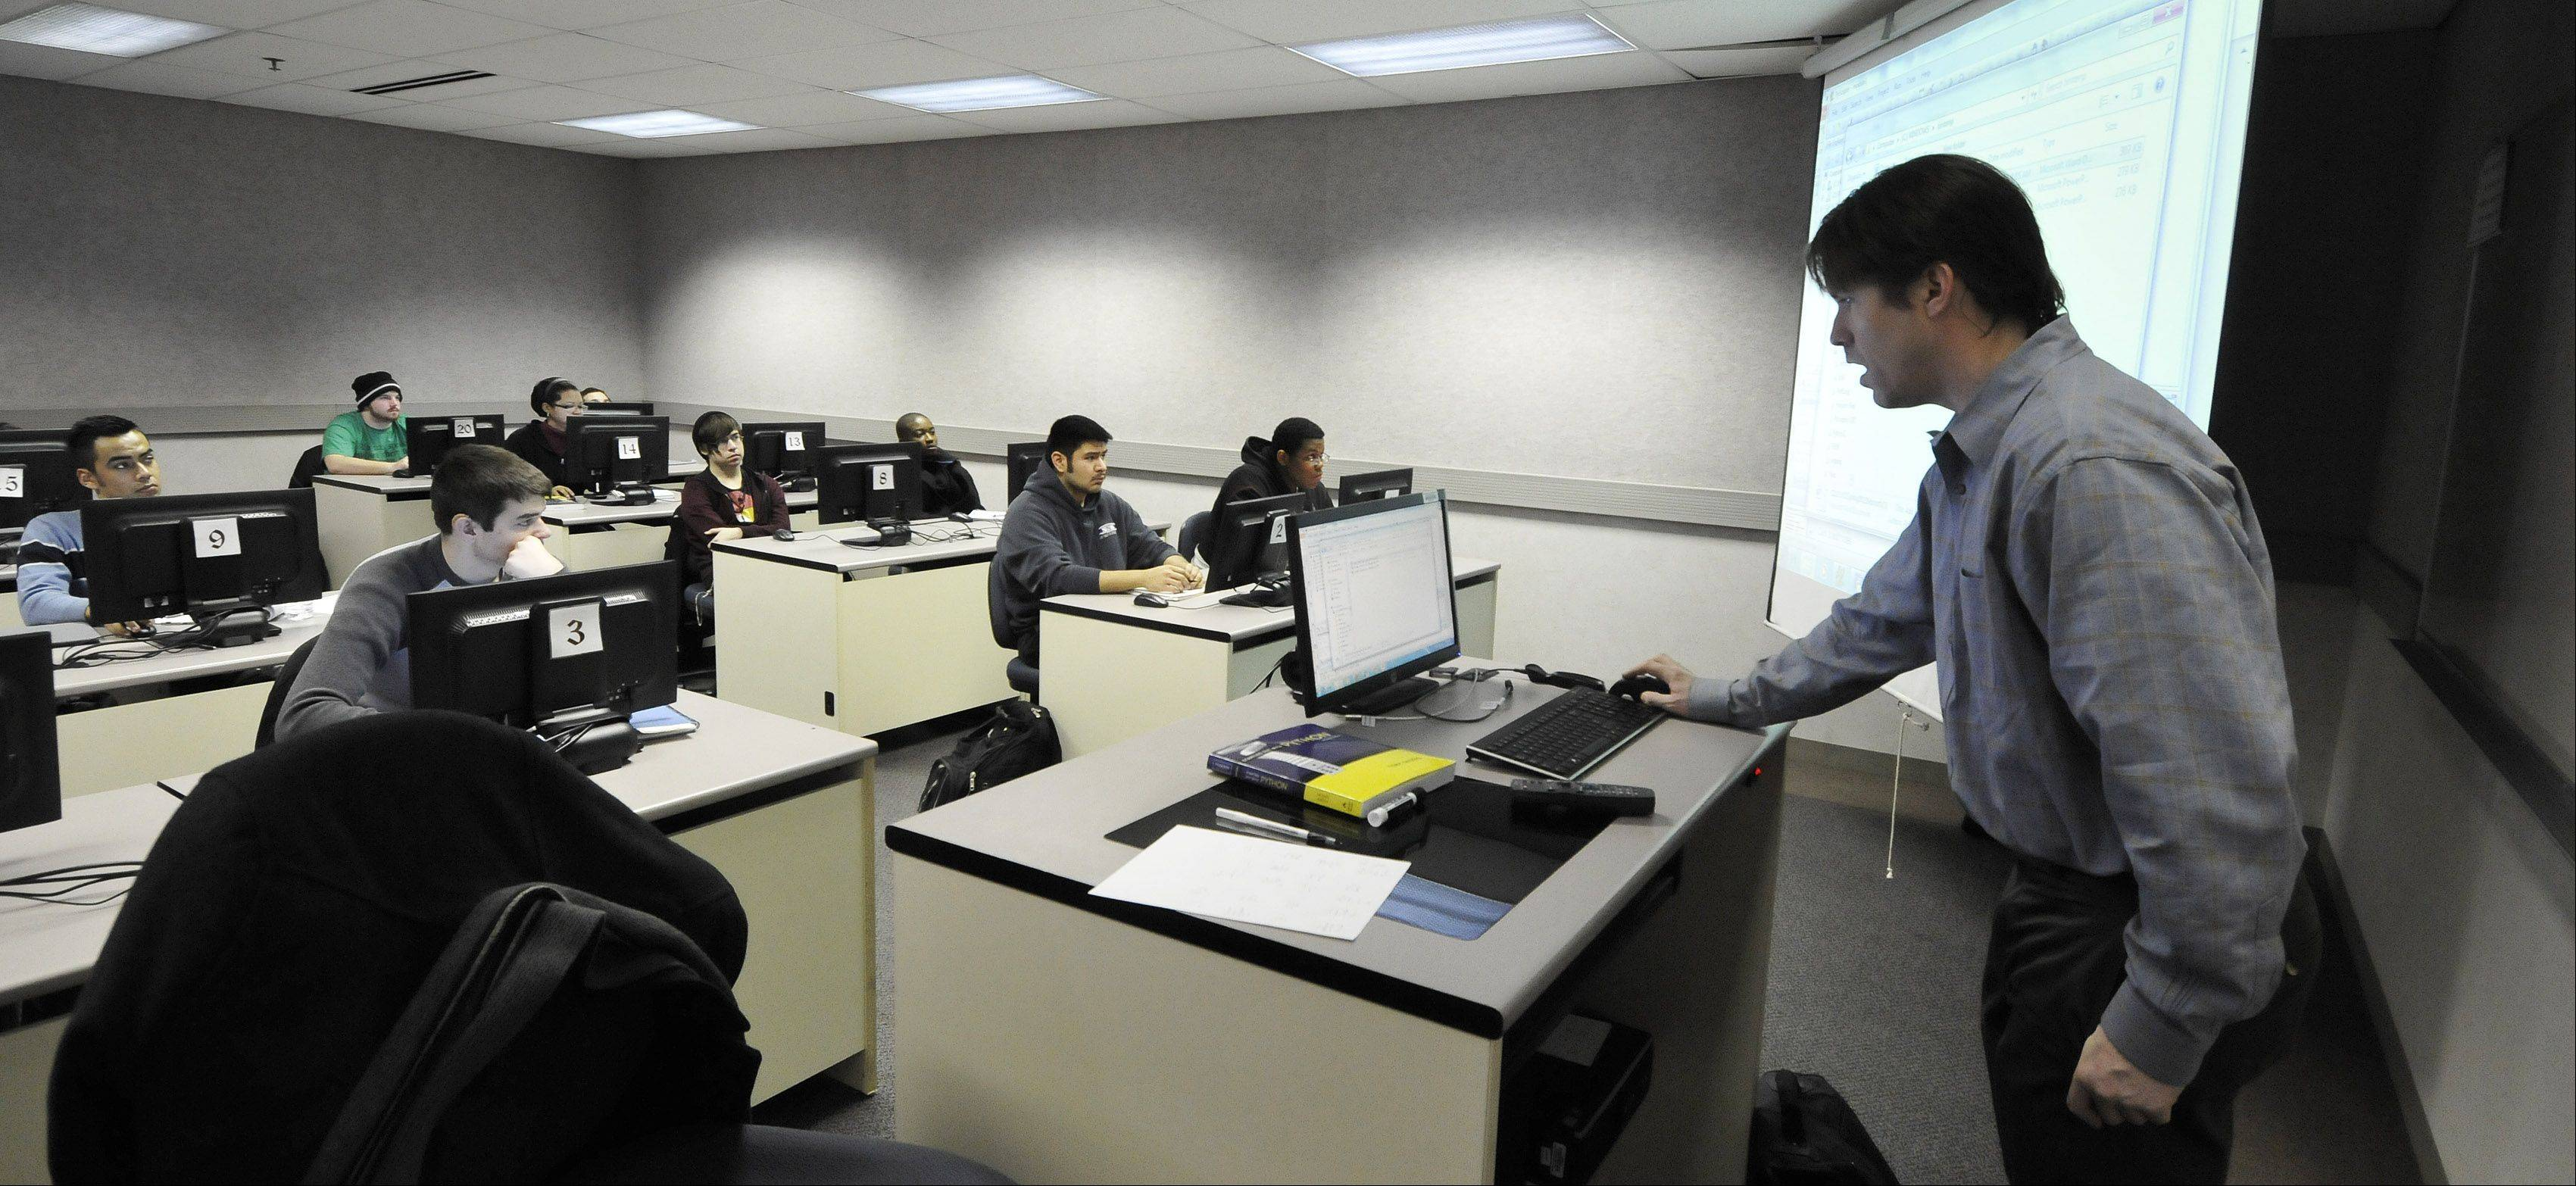 Tim Moriarty teaches an introductory computer programming class at Waubonsee Community College in Sugar Grove. Waubonsee is participating in the Aurora Regional Pathways to Prosperity Project, an initiative launched Friday to develop better paths into careers in health care, manufacturing and information technology for area students.